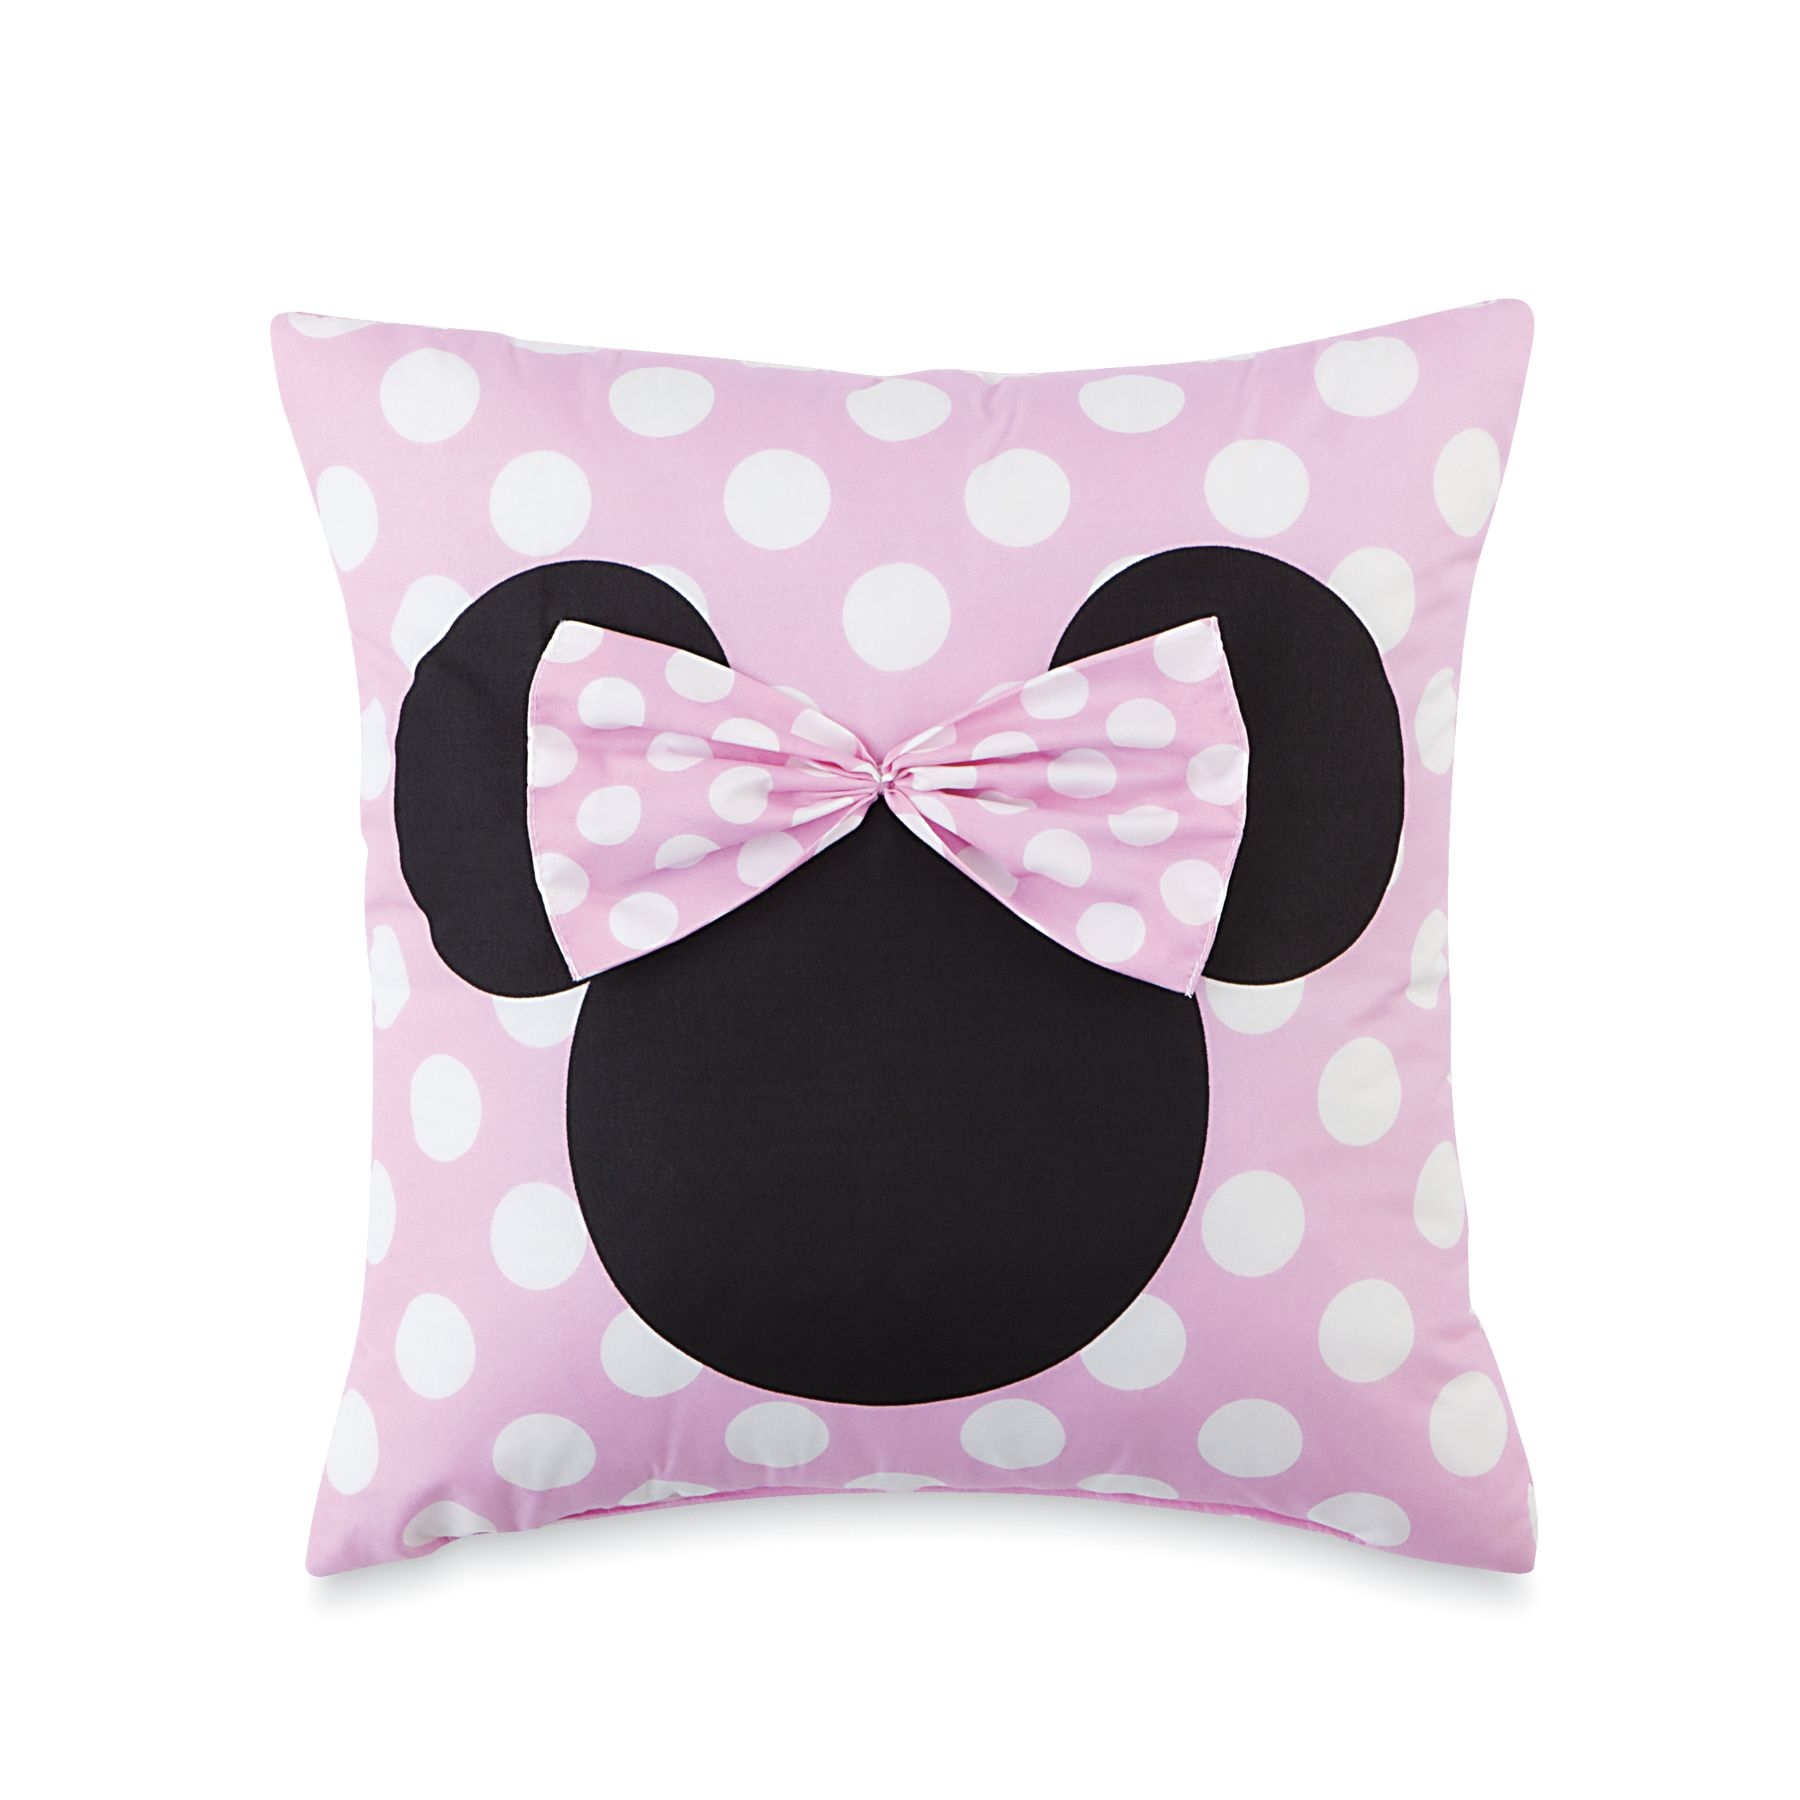 Disney Minnie Mouse Decorative Pillow 16x16